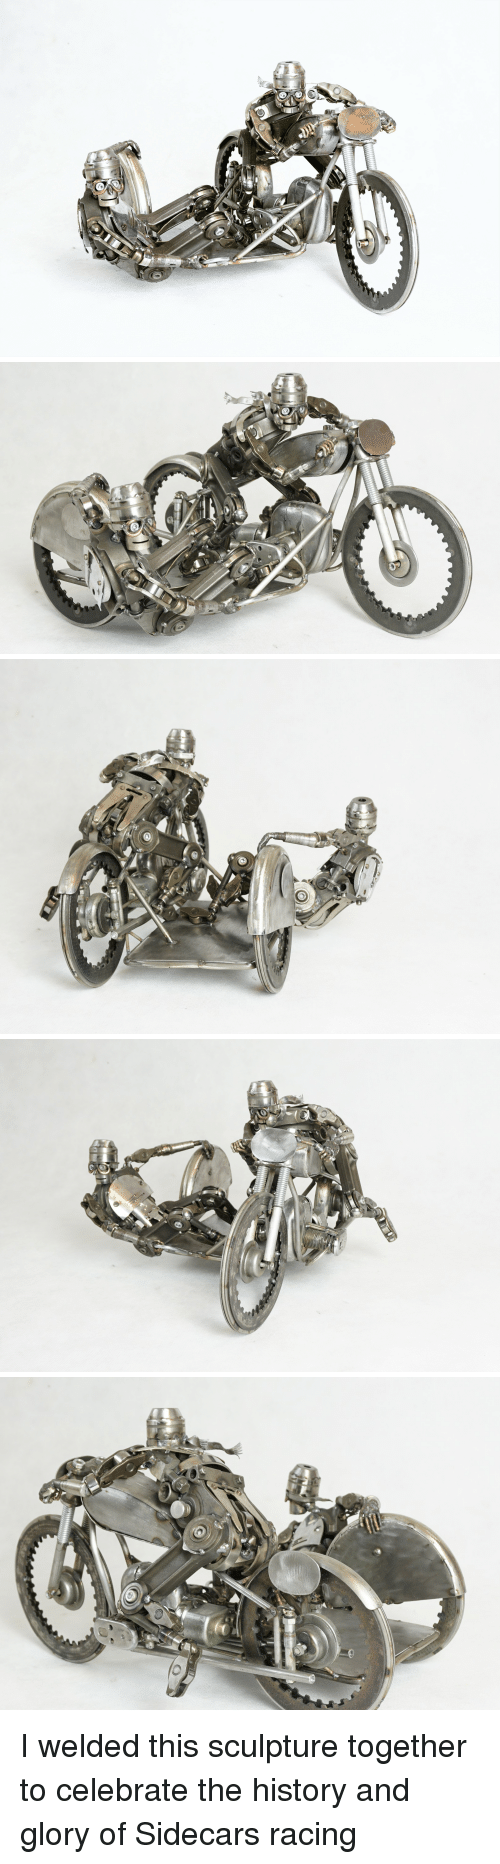 Sculpture: I welded this sculpture together to celebrate the history and glory of Sidecars racing